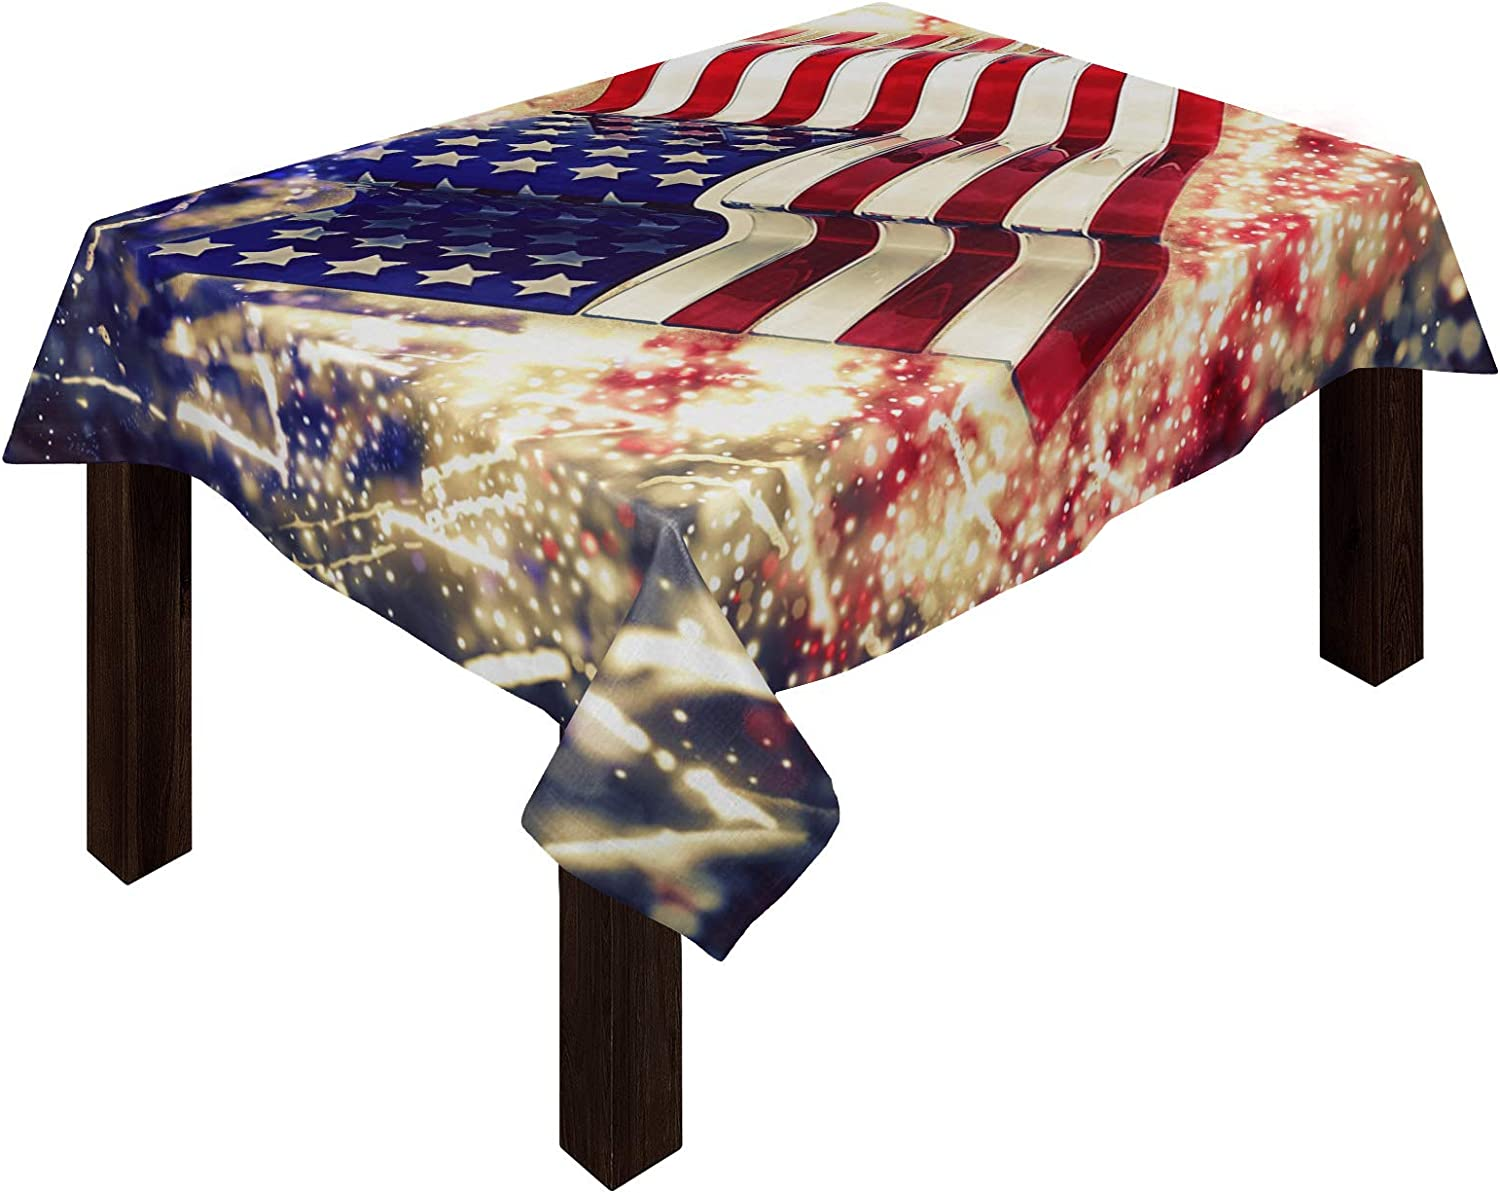 Independence Day Cotton Linen プレゼント Tablecloth Flag セール特別価格 Firework American